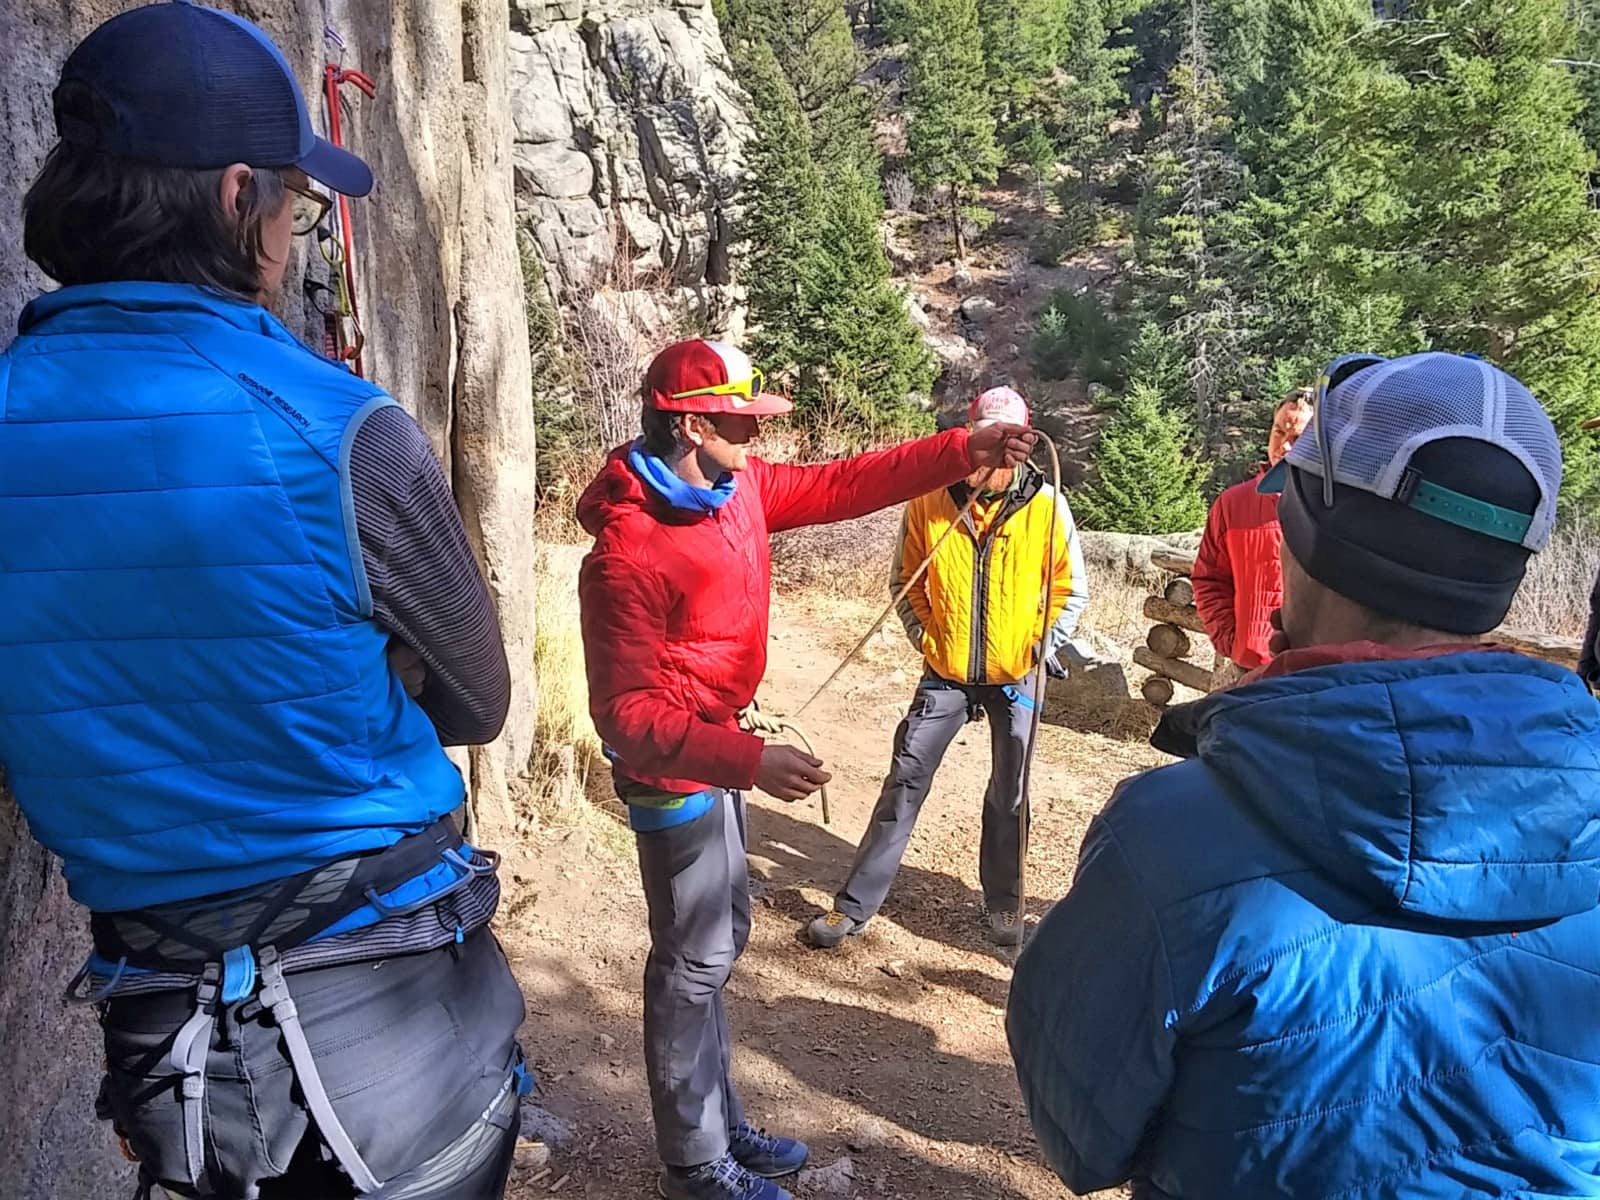 An Instructor teaches SPI Course candidates on an AMGA Single Pitch Instructor Course in Boulder, Colorado